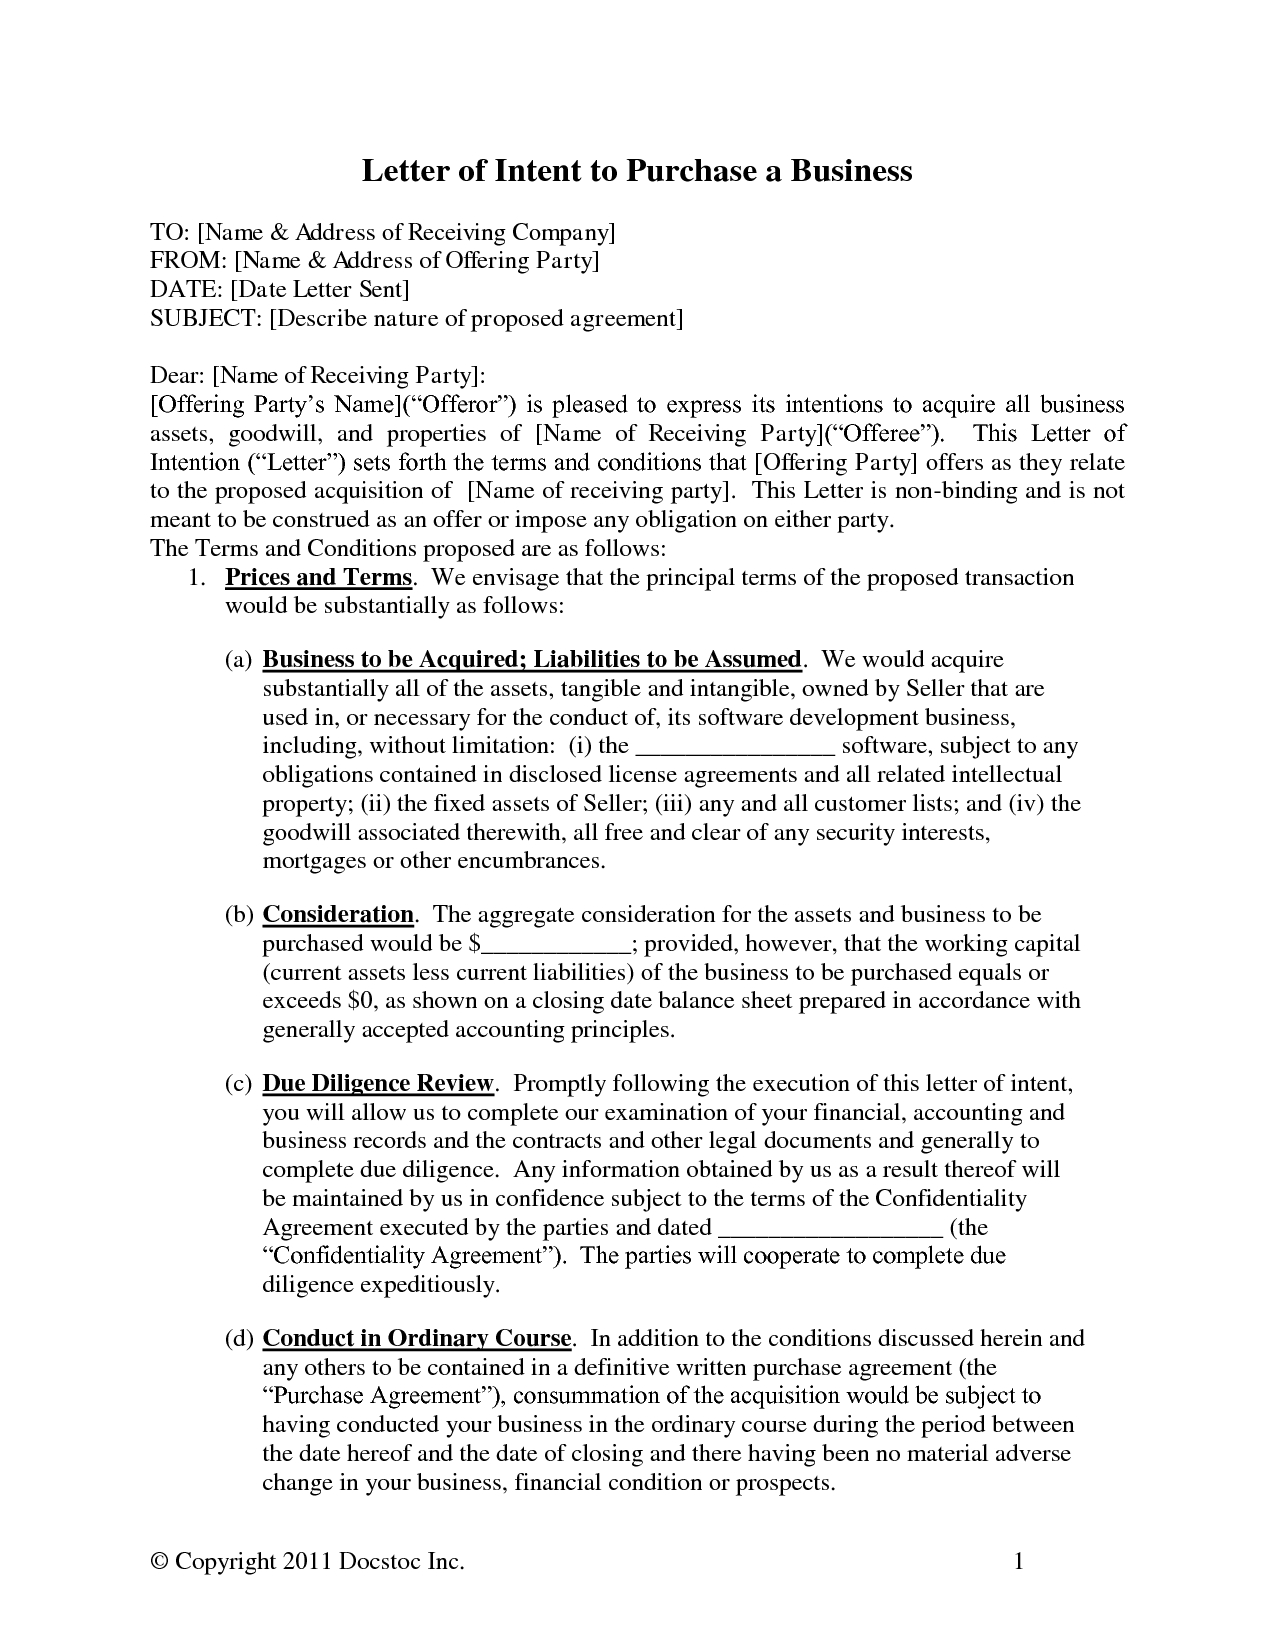 Letter Of Intent Template Microsoft Word - Acquisition Business Letters